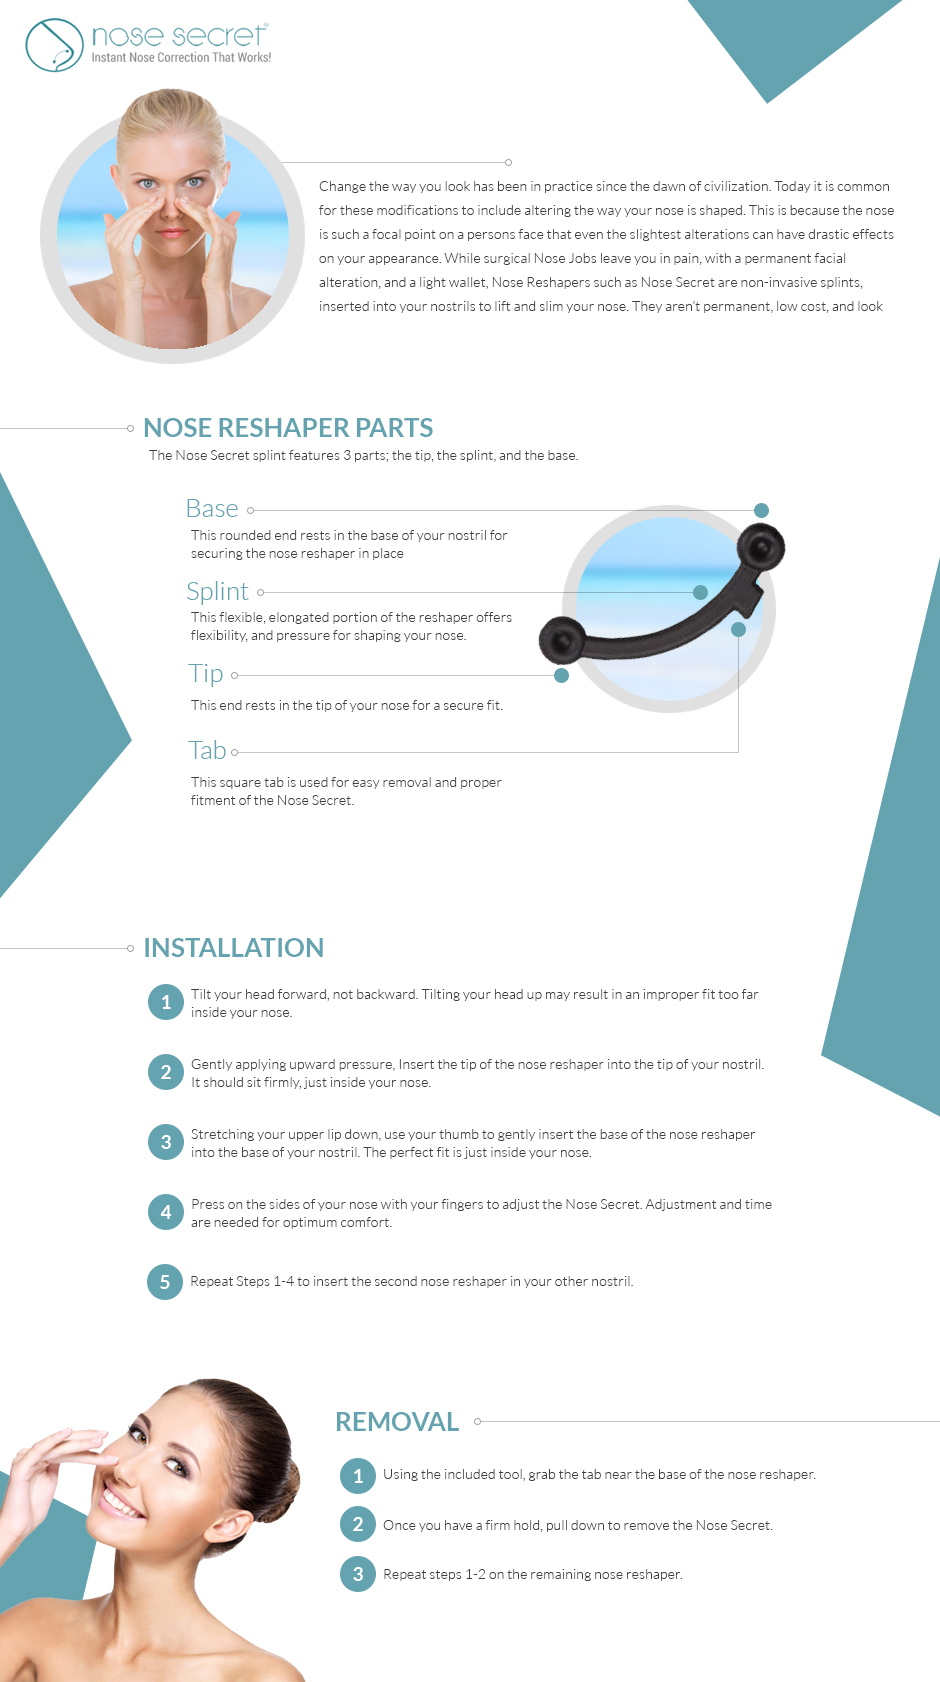 Proper Nose Secret, nose reshaper, Installation and Removal Infographic.